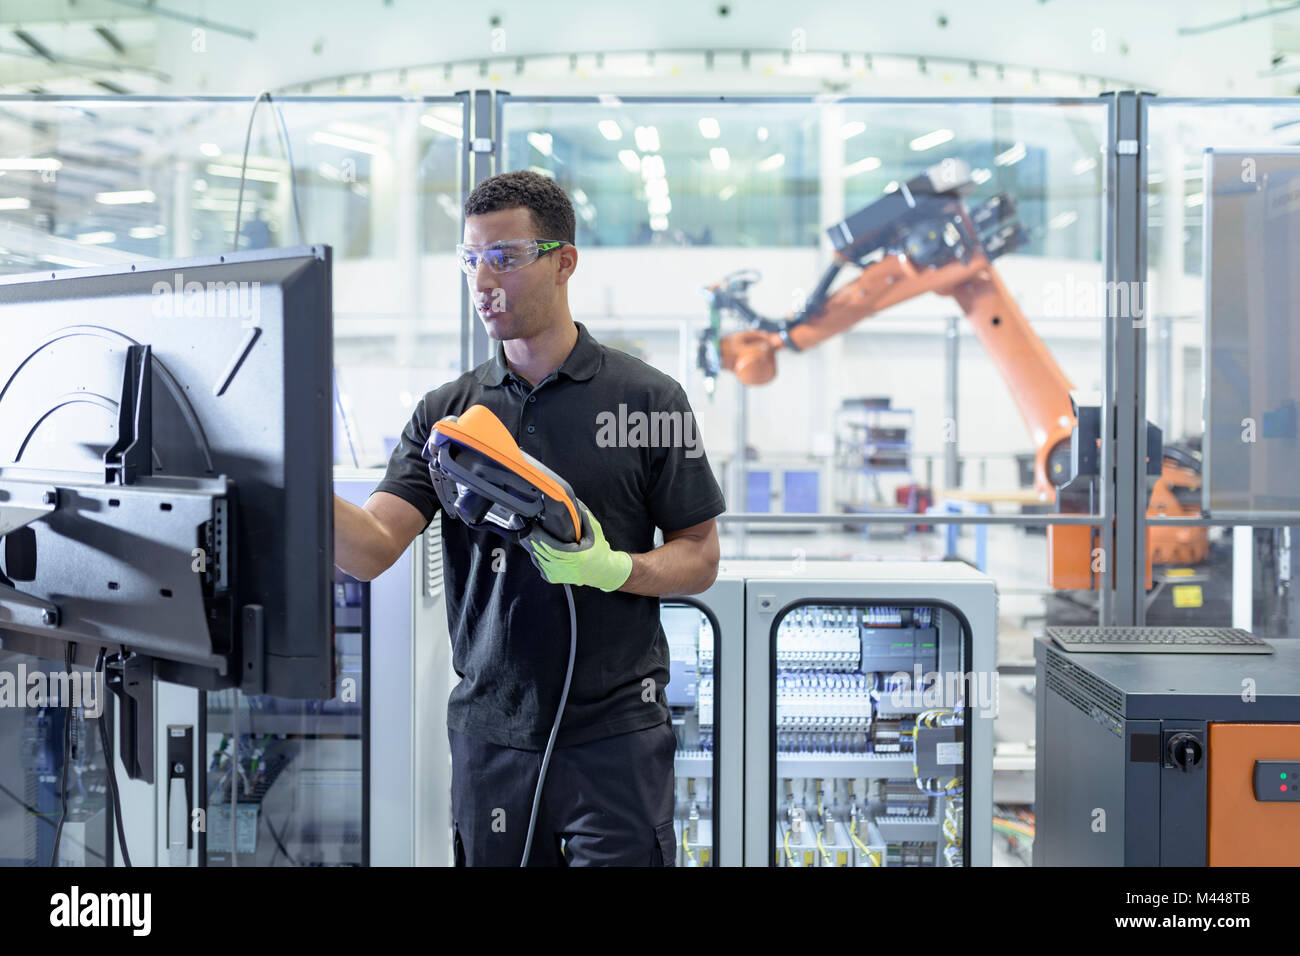 Engineer programming robot in robotics research facility Stock Photo